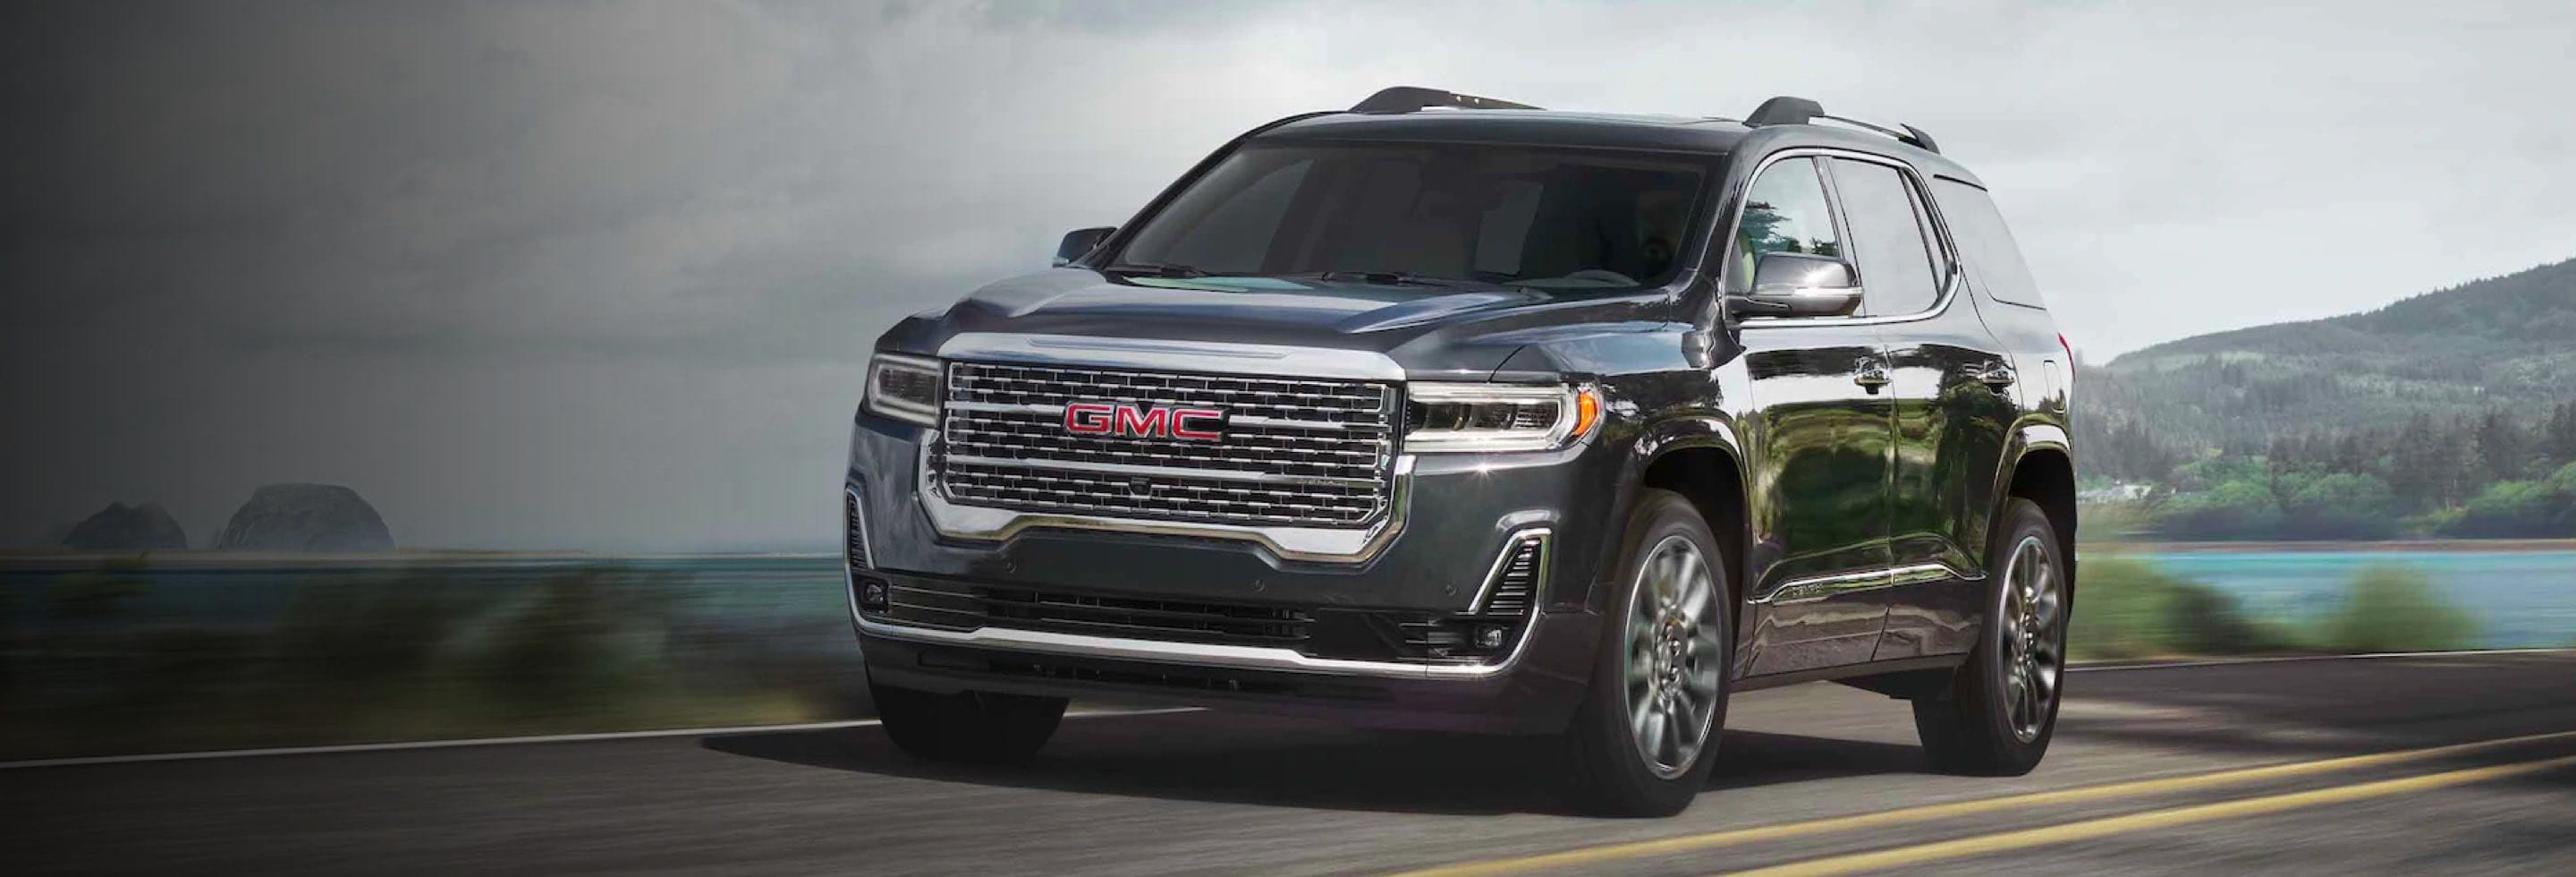 2021 GMC Acadia driving along country road